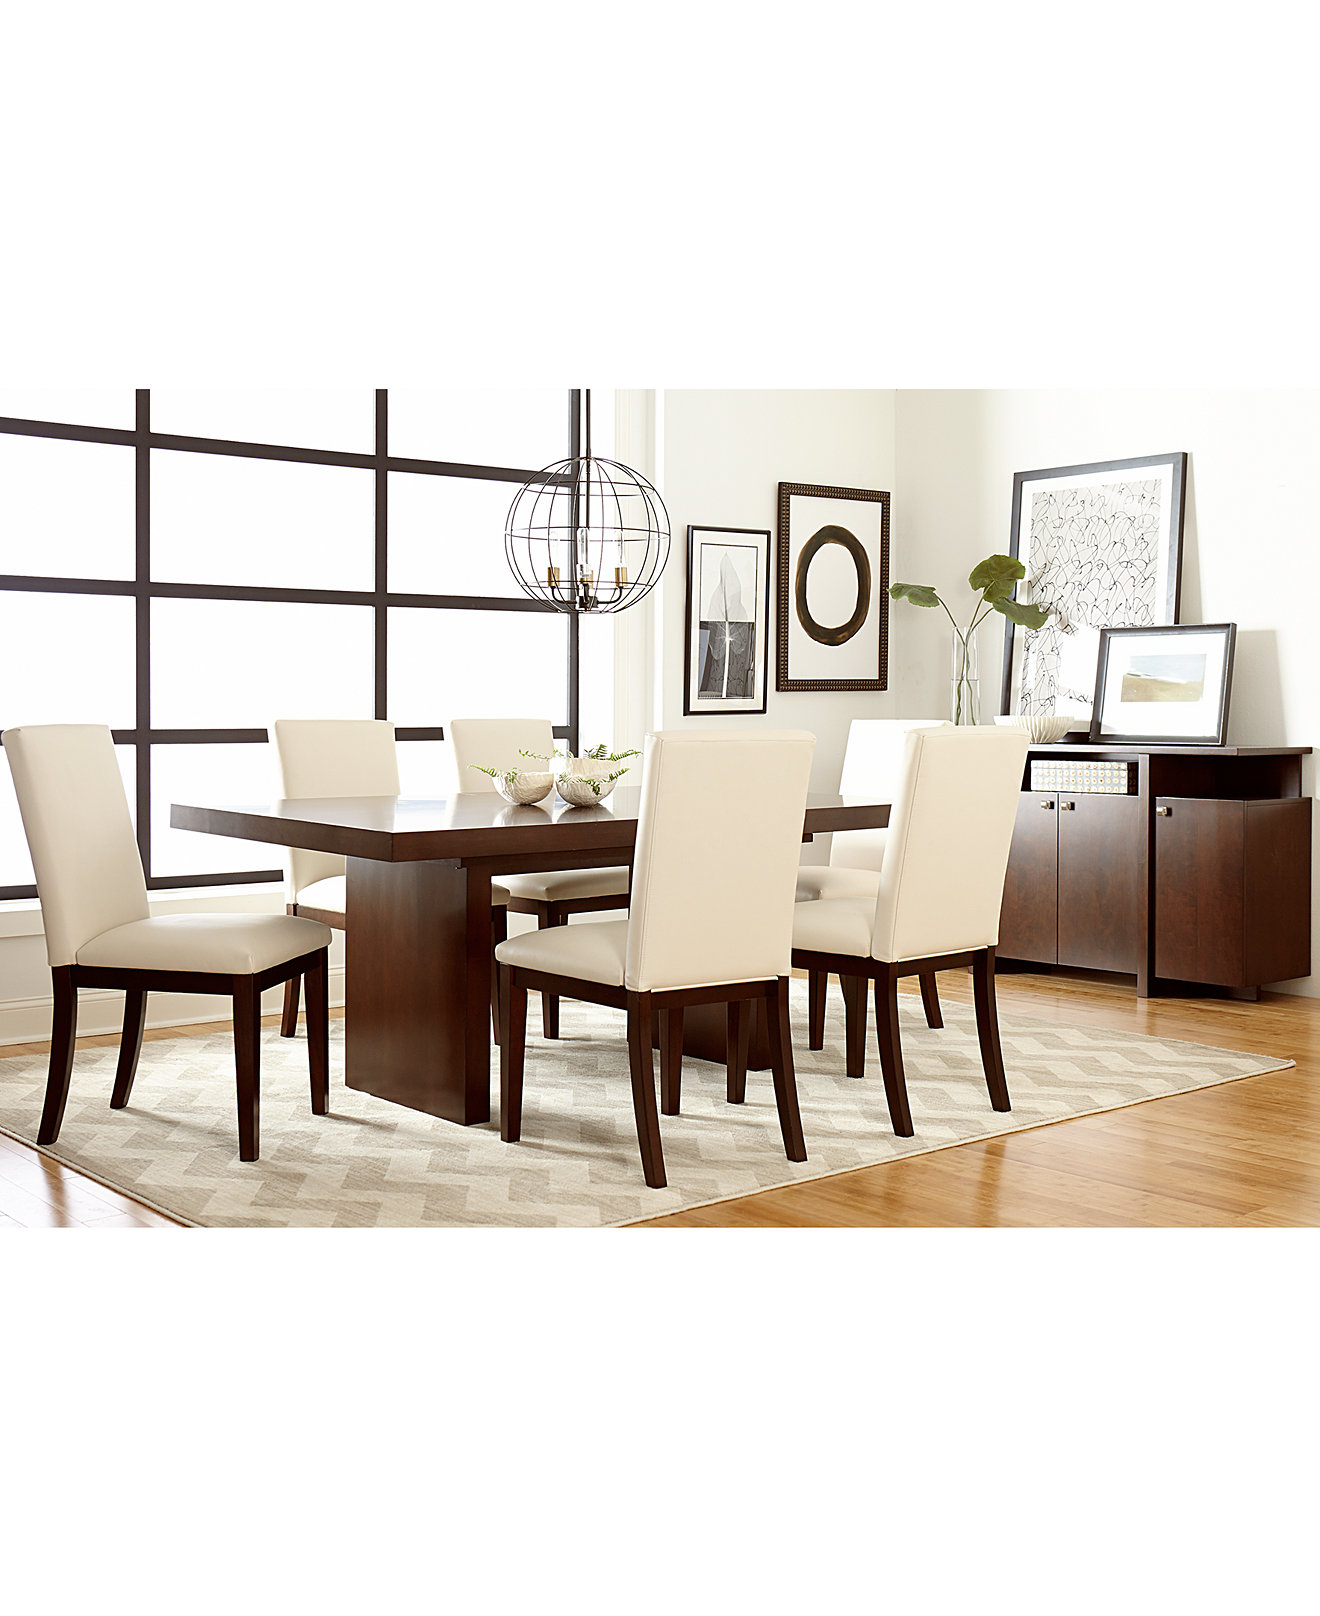 Macys Dining Room Table Furniture Macys Chest Furniture Mirrored Furniture Furniture